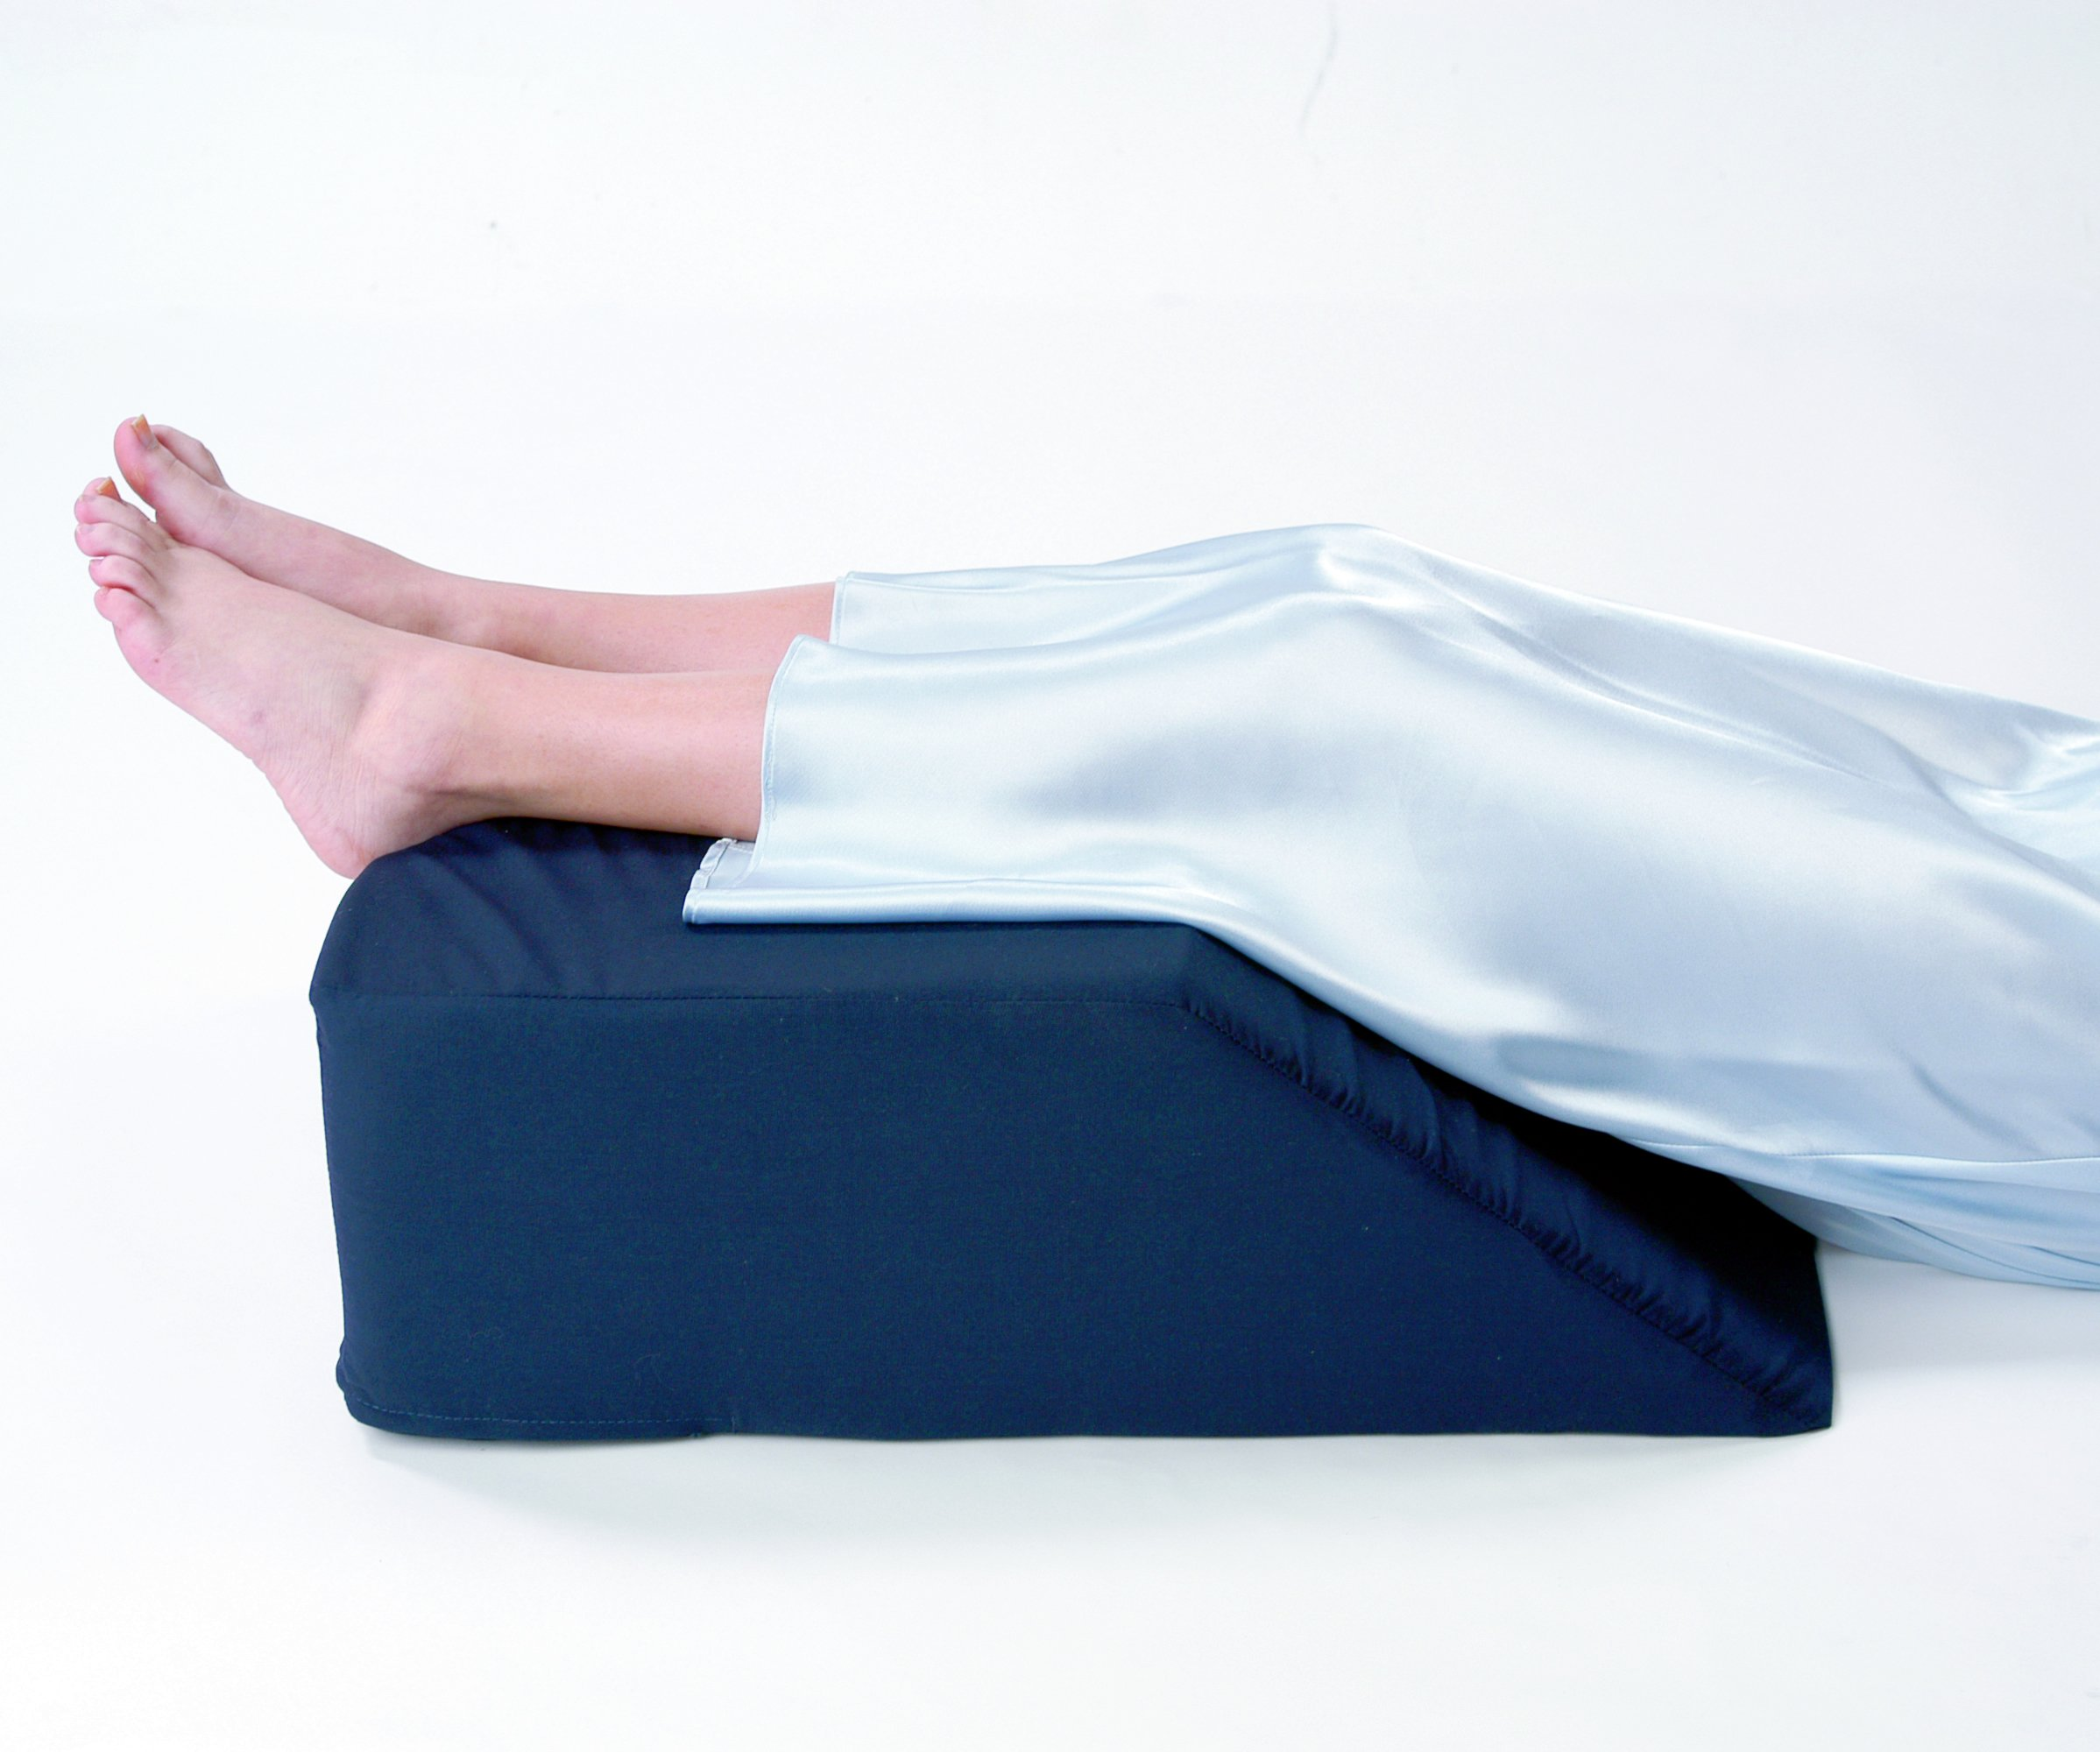 Leg/bed Wedge with High Quality, Removable Cover (Size: 8'' X 20'' X 25''. Color Navy)